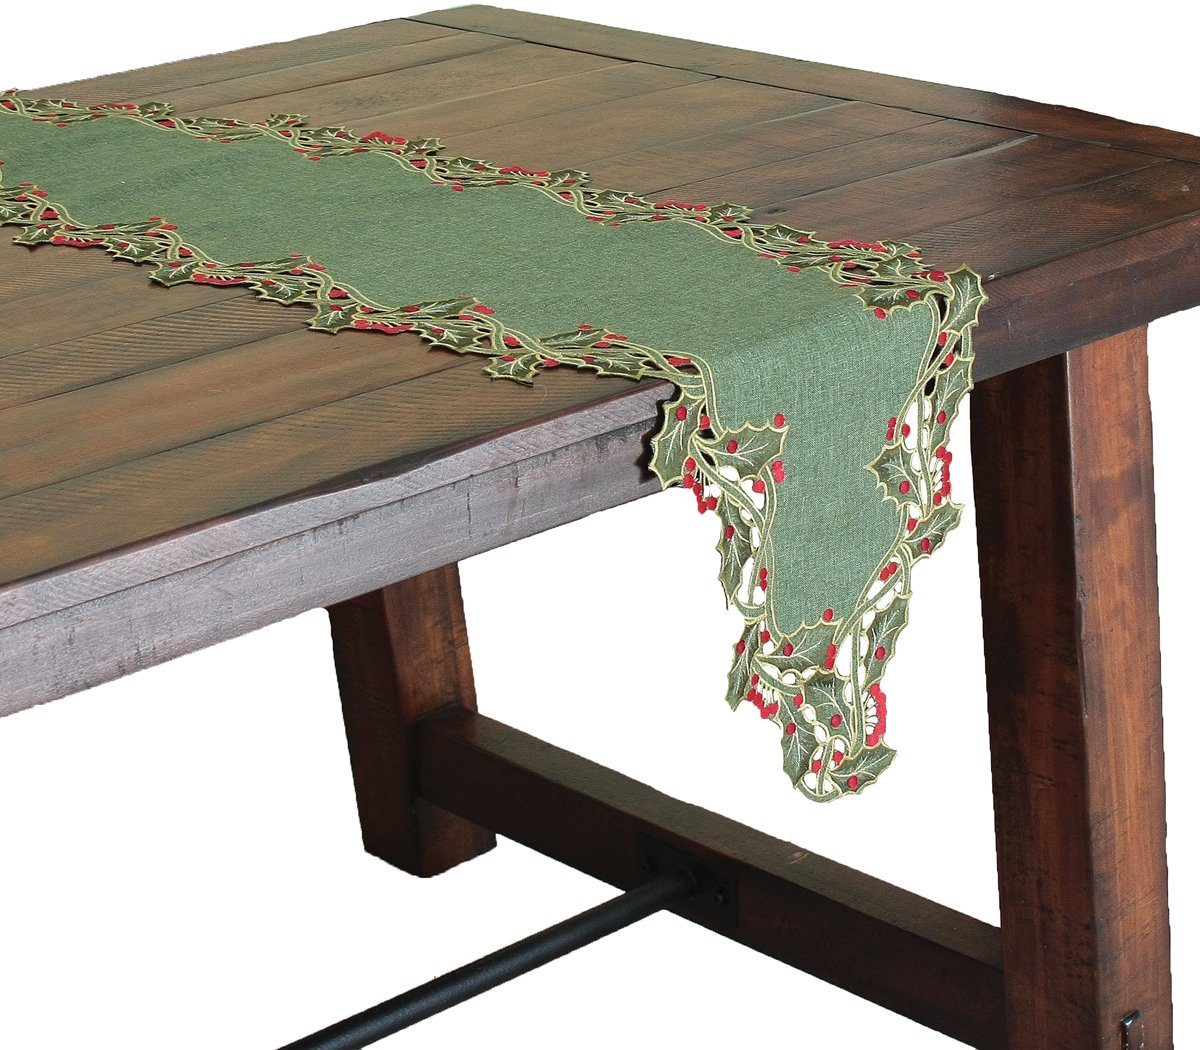 Xia Home Fashions Holiday Holly Embroidered Cutwork Christmas Table Runner, 15 by 70-Inch, Green